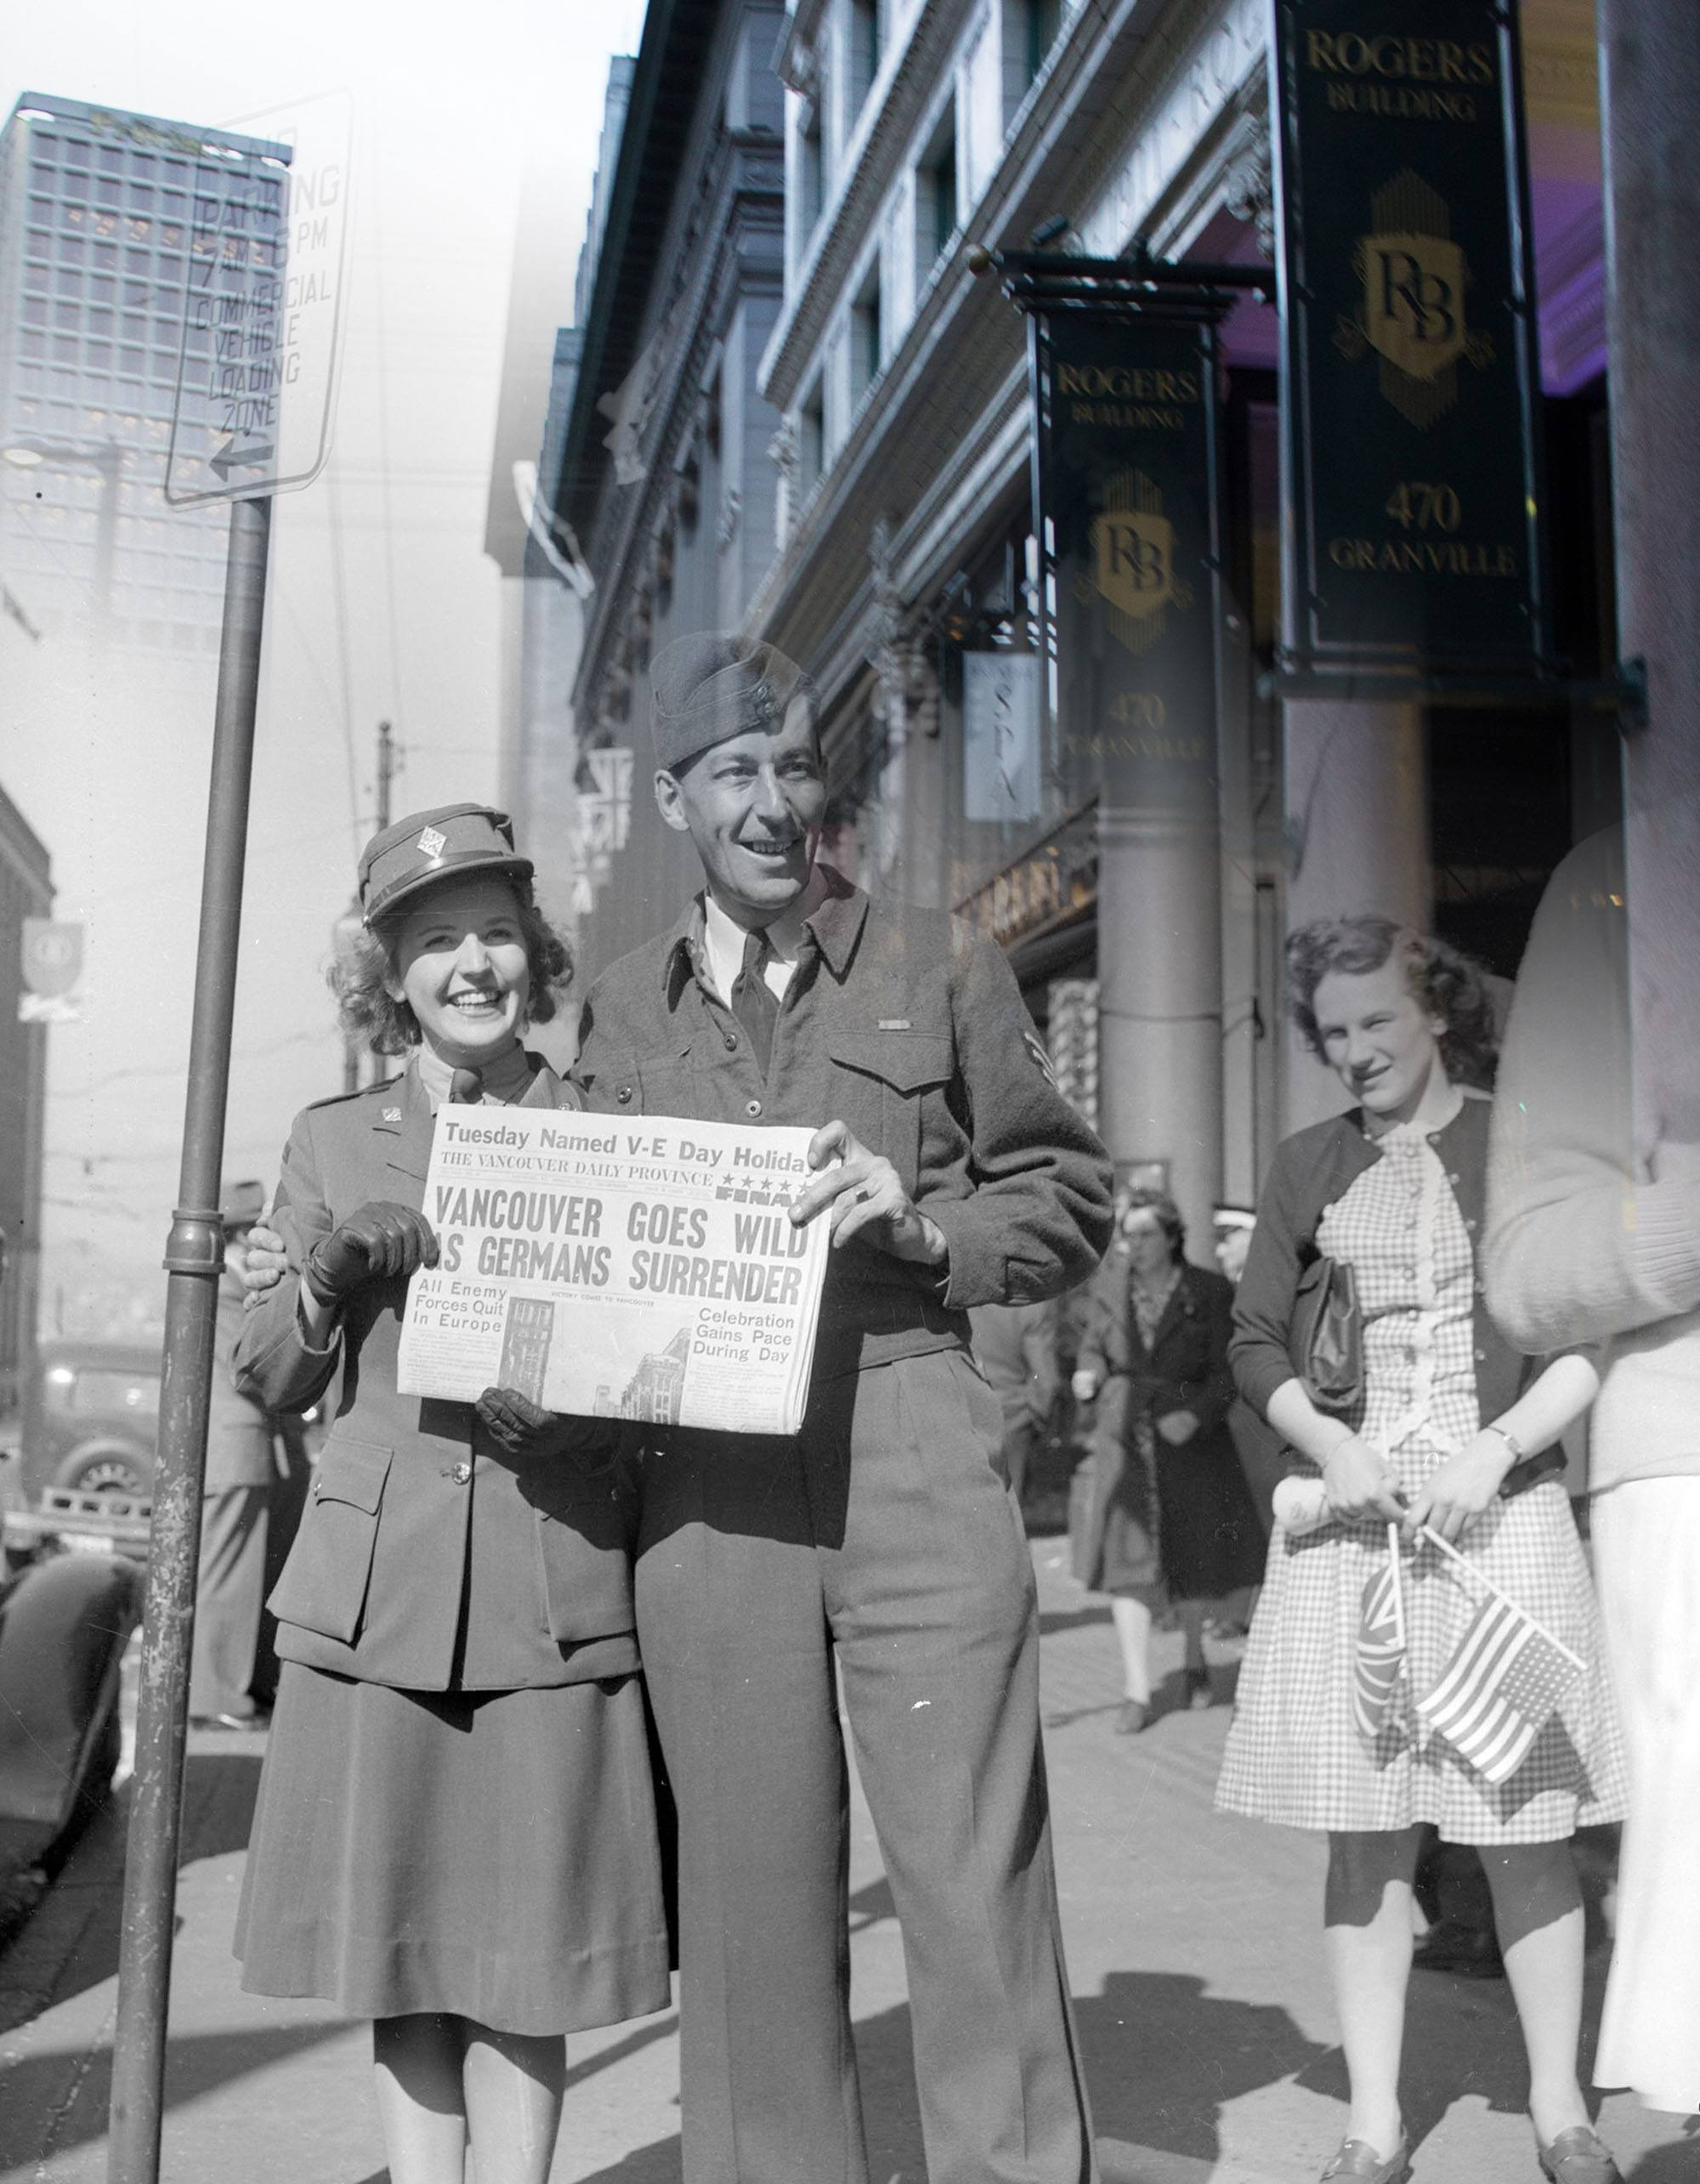 A uniformed man and woman beam as they celebrate Victory in Europe Day in 1945 (Vancouver Archives/On This Spot0